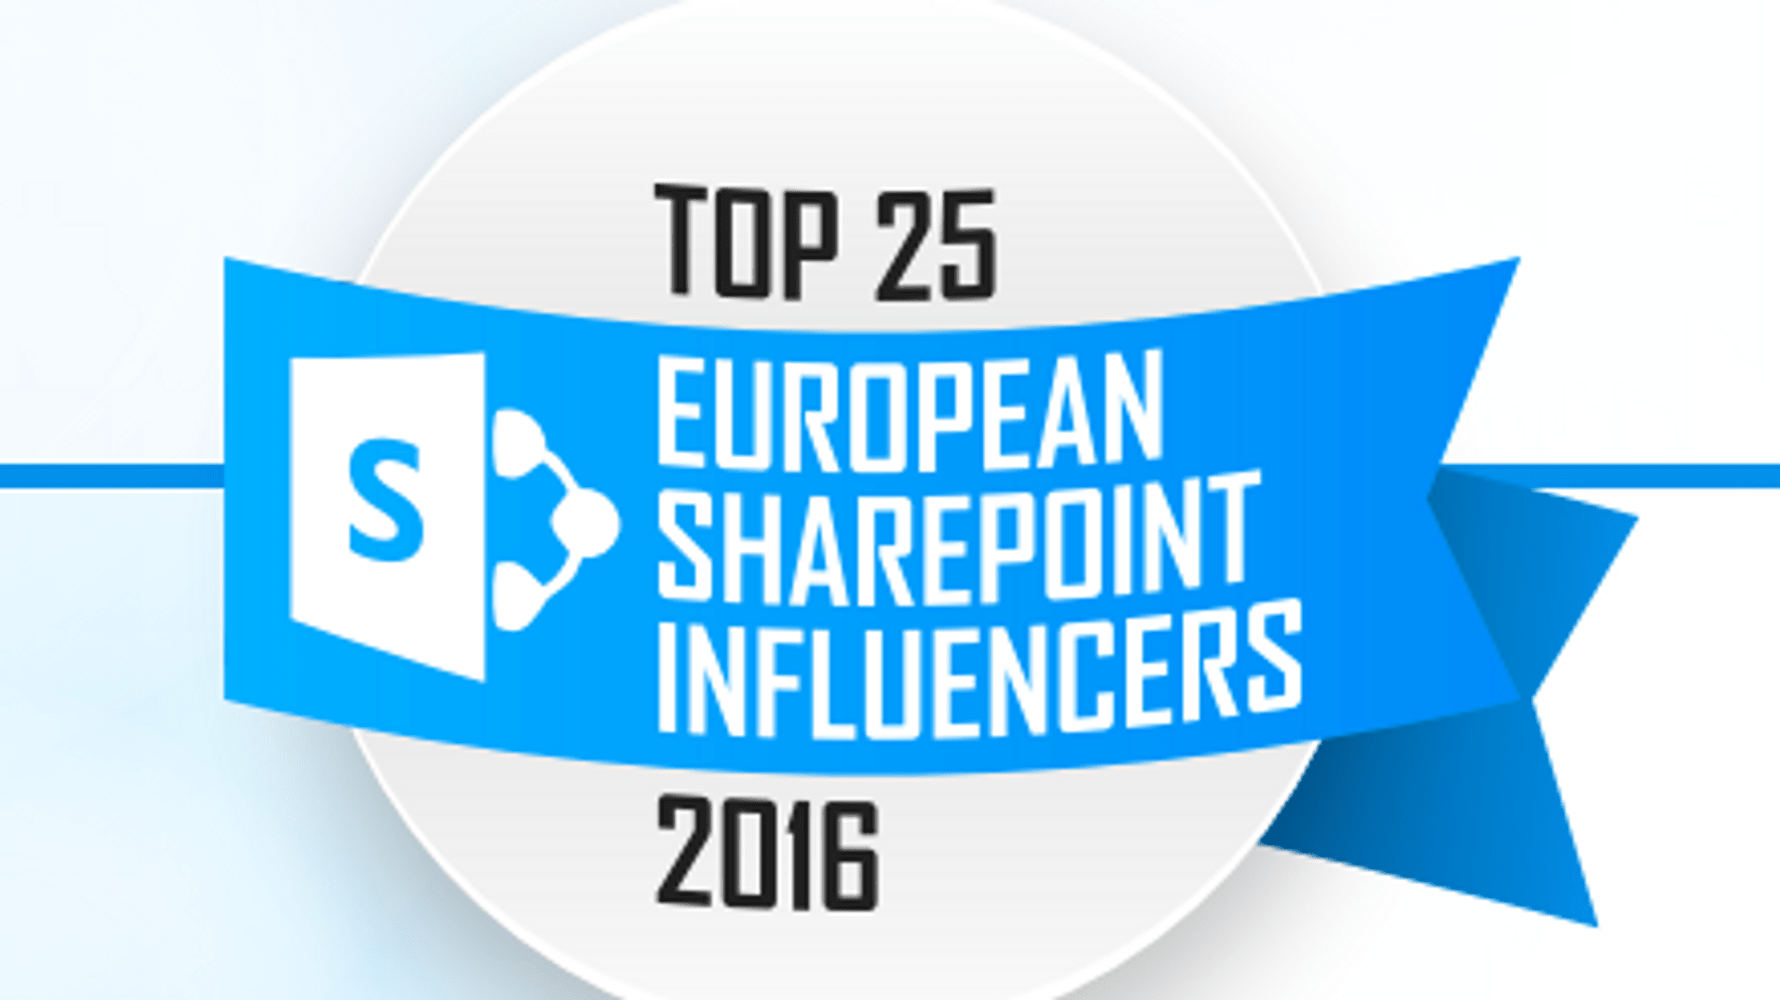 European Sharepoint Influencers